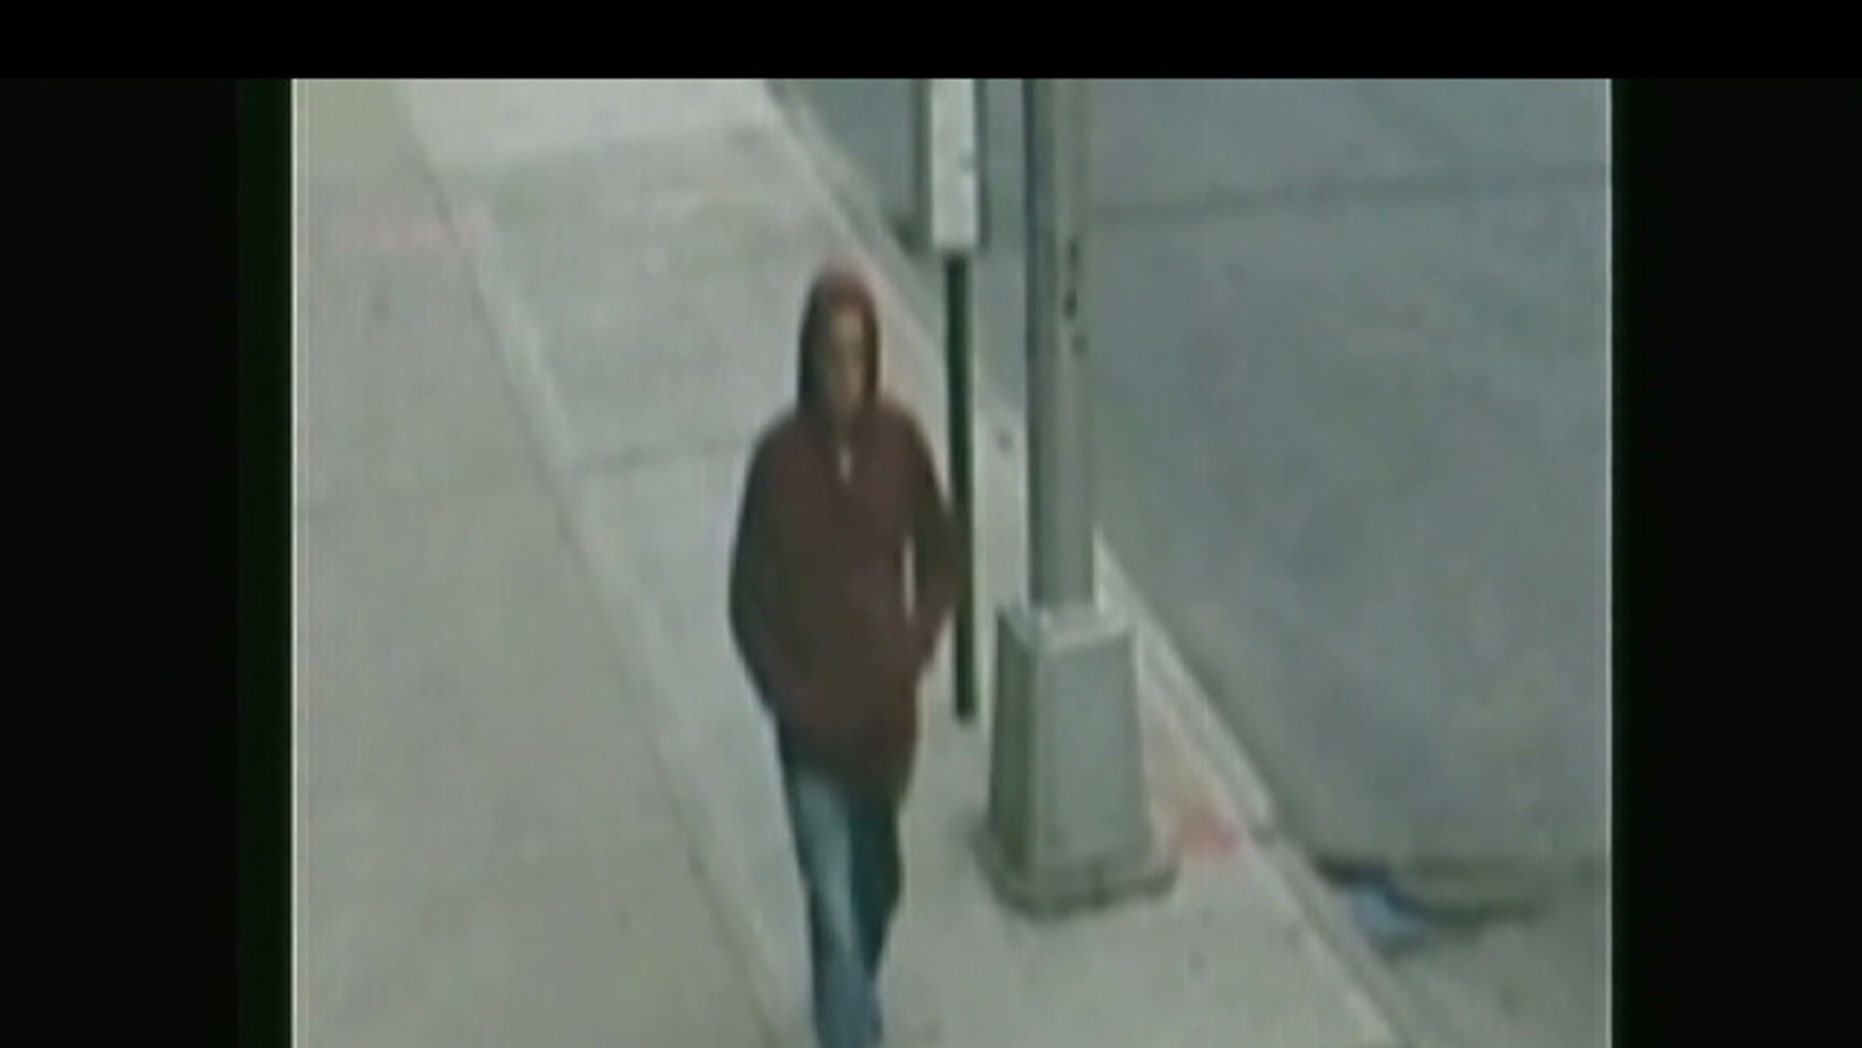 Image of suspect who stole SUV in New York City as a mother loaded groceries into the car that her 2-year-old son was in.